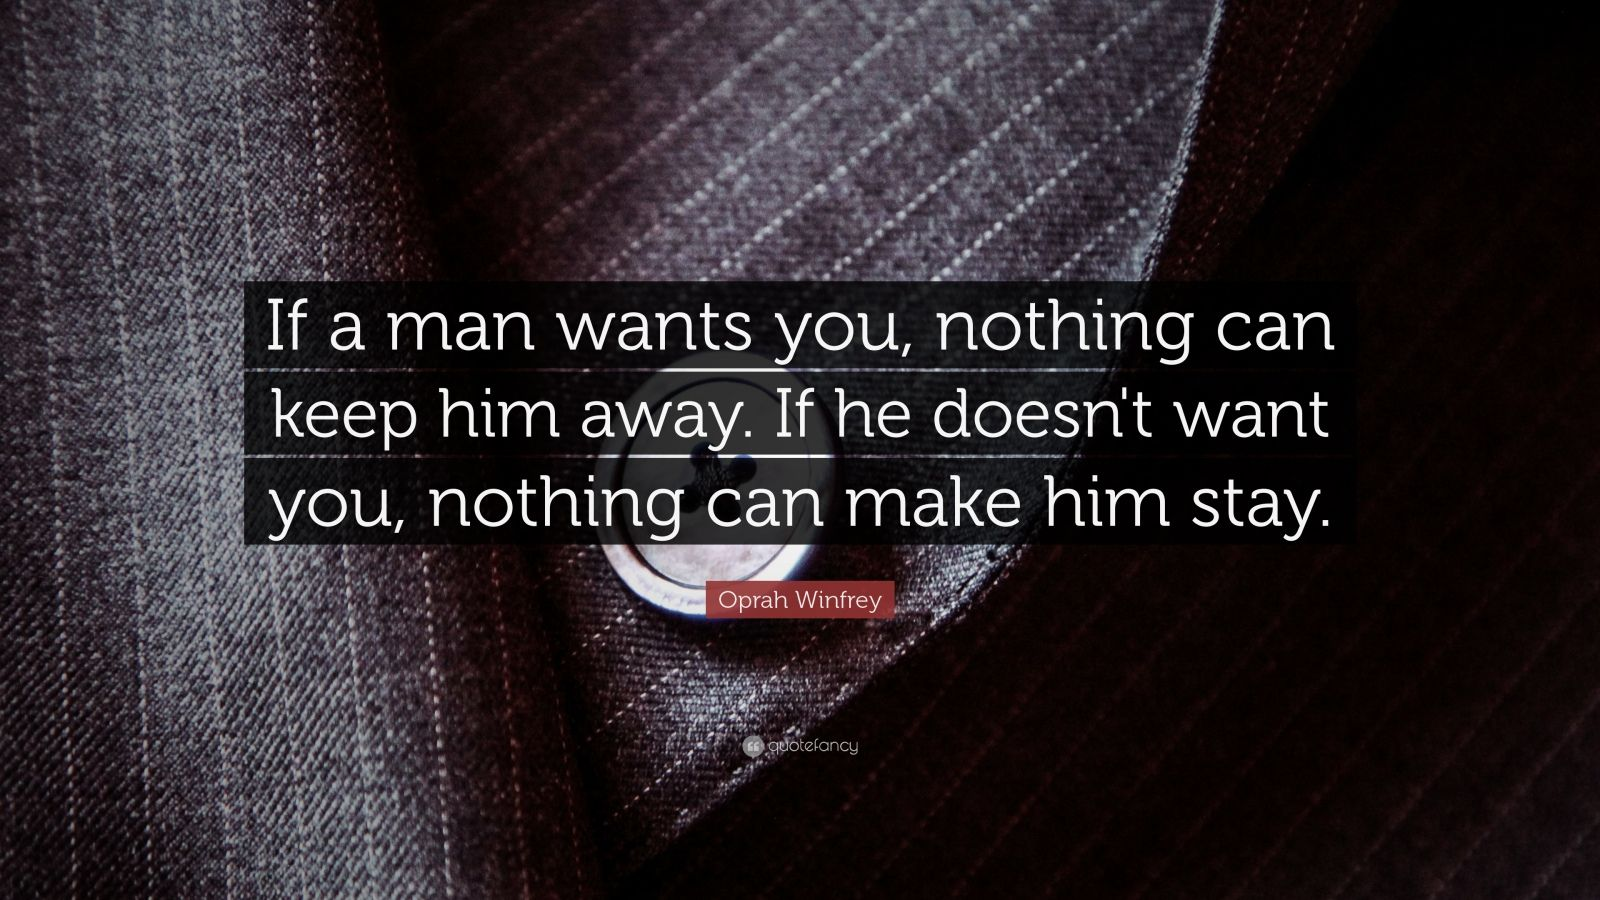 """Oprah Winfrey Quote: """"If a man wants you, nothing can keep him away. If he doesn't want you, nothing can make him stay."""""""